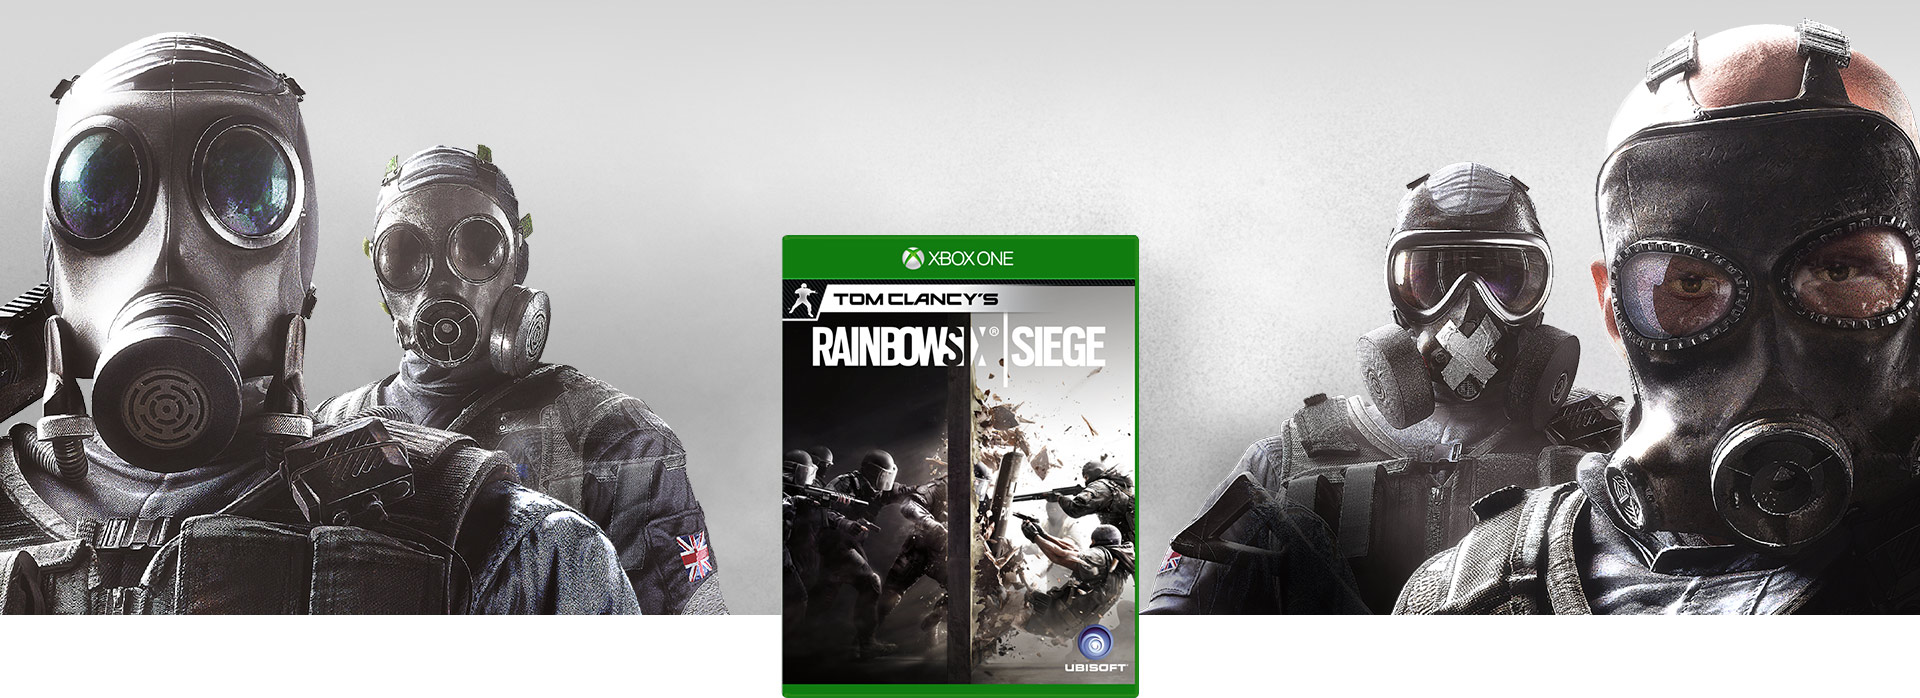 Rainbow Six Siege boxshot, against a background of four terrorists wearing gas masks